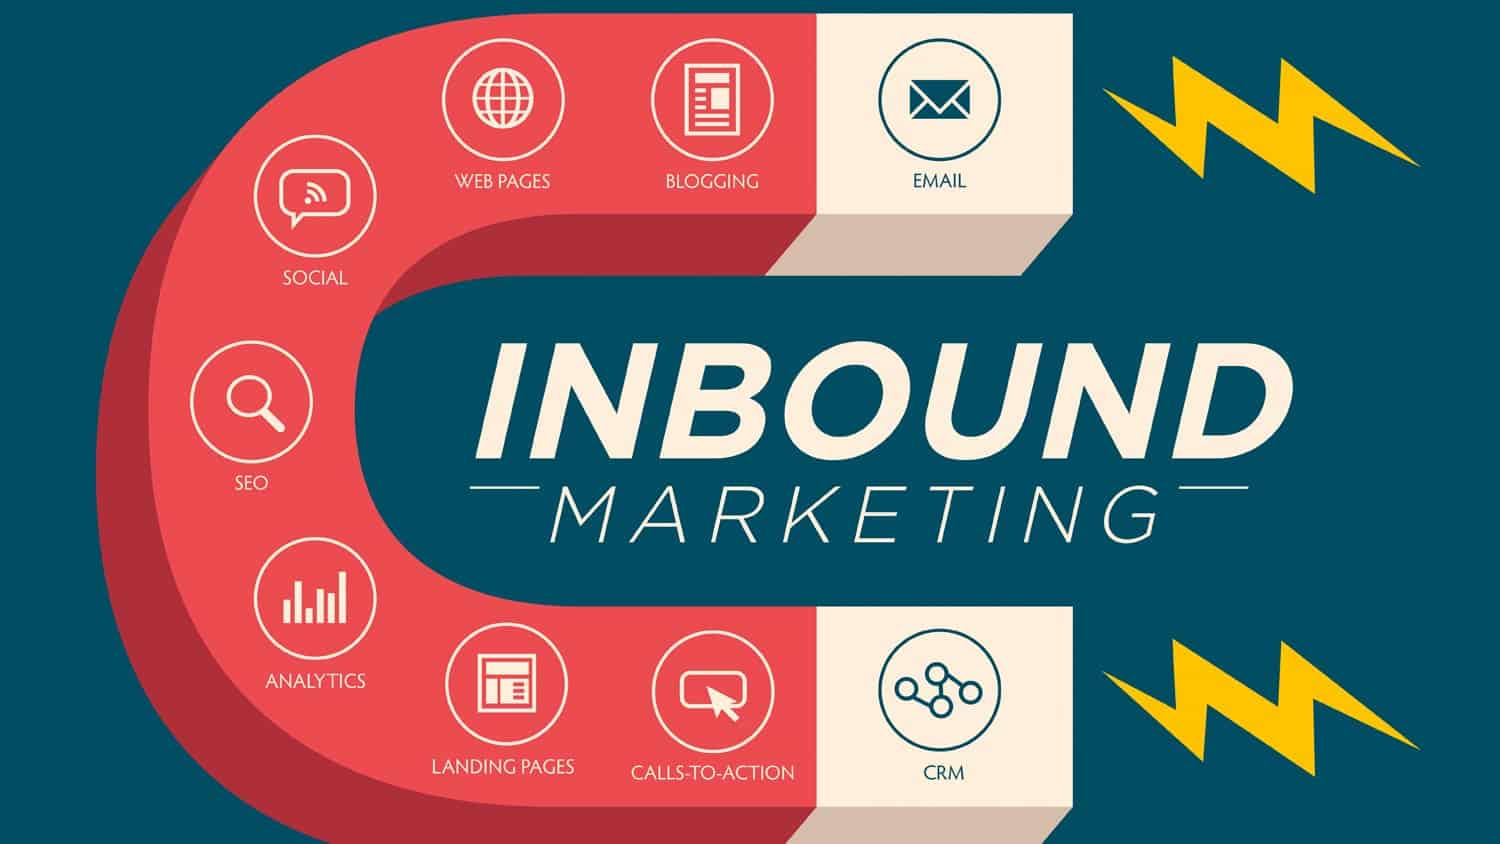 Inbound marketing | ABC Digital | Términos de inbound marketing